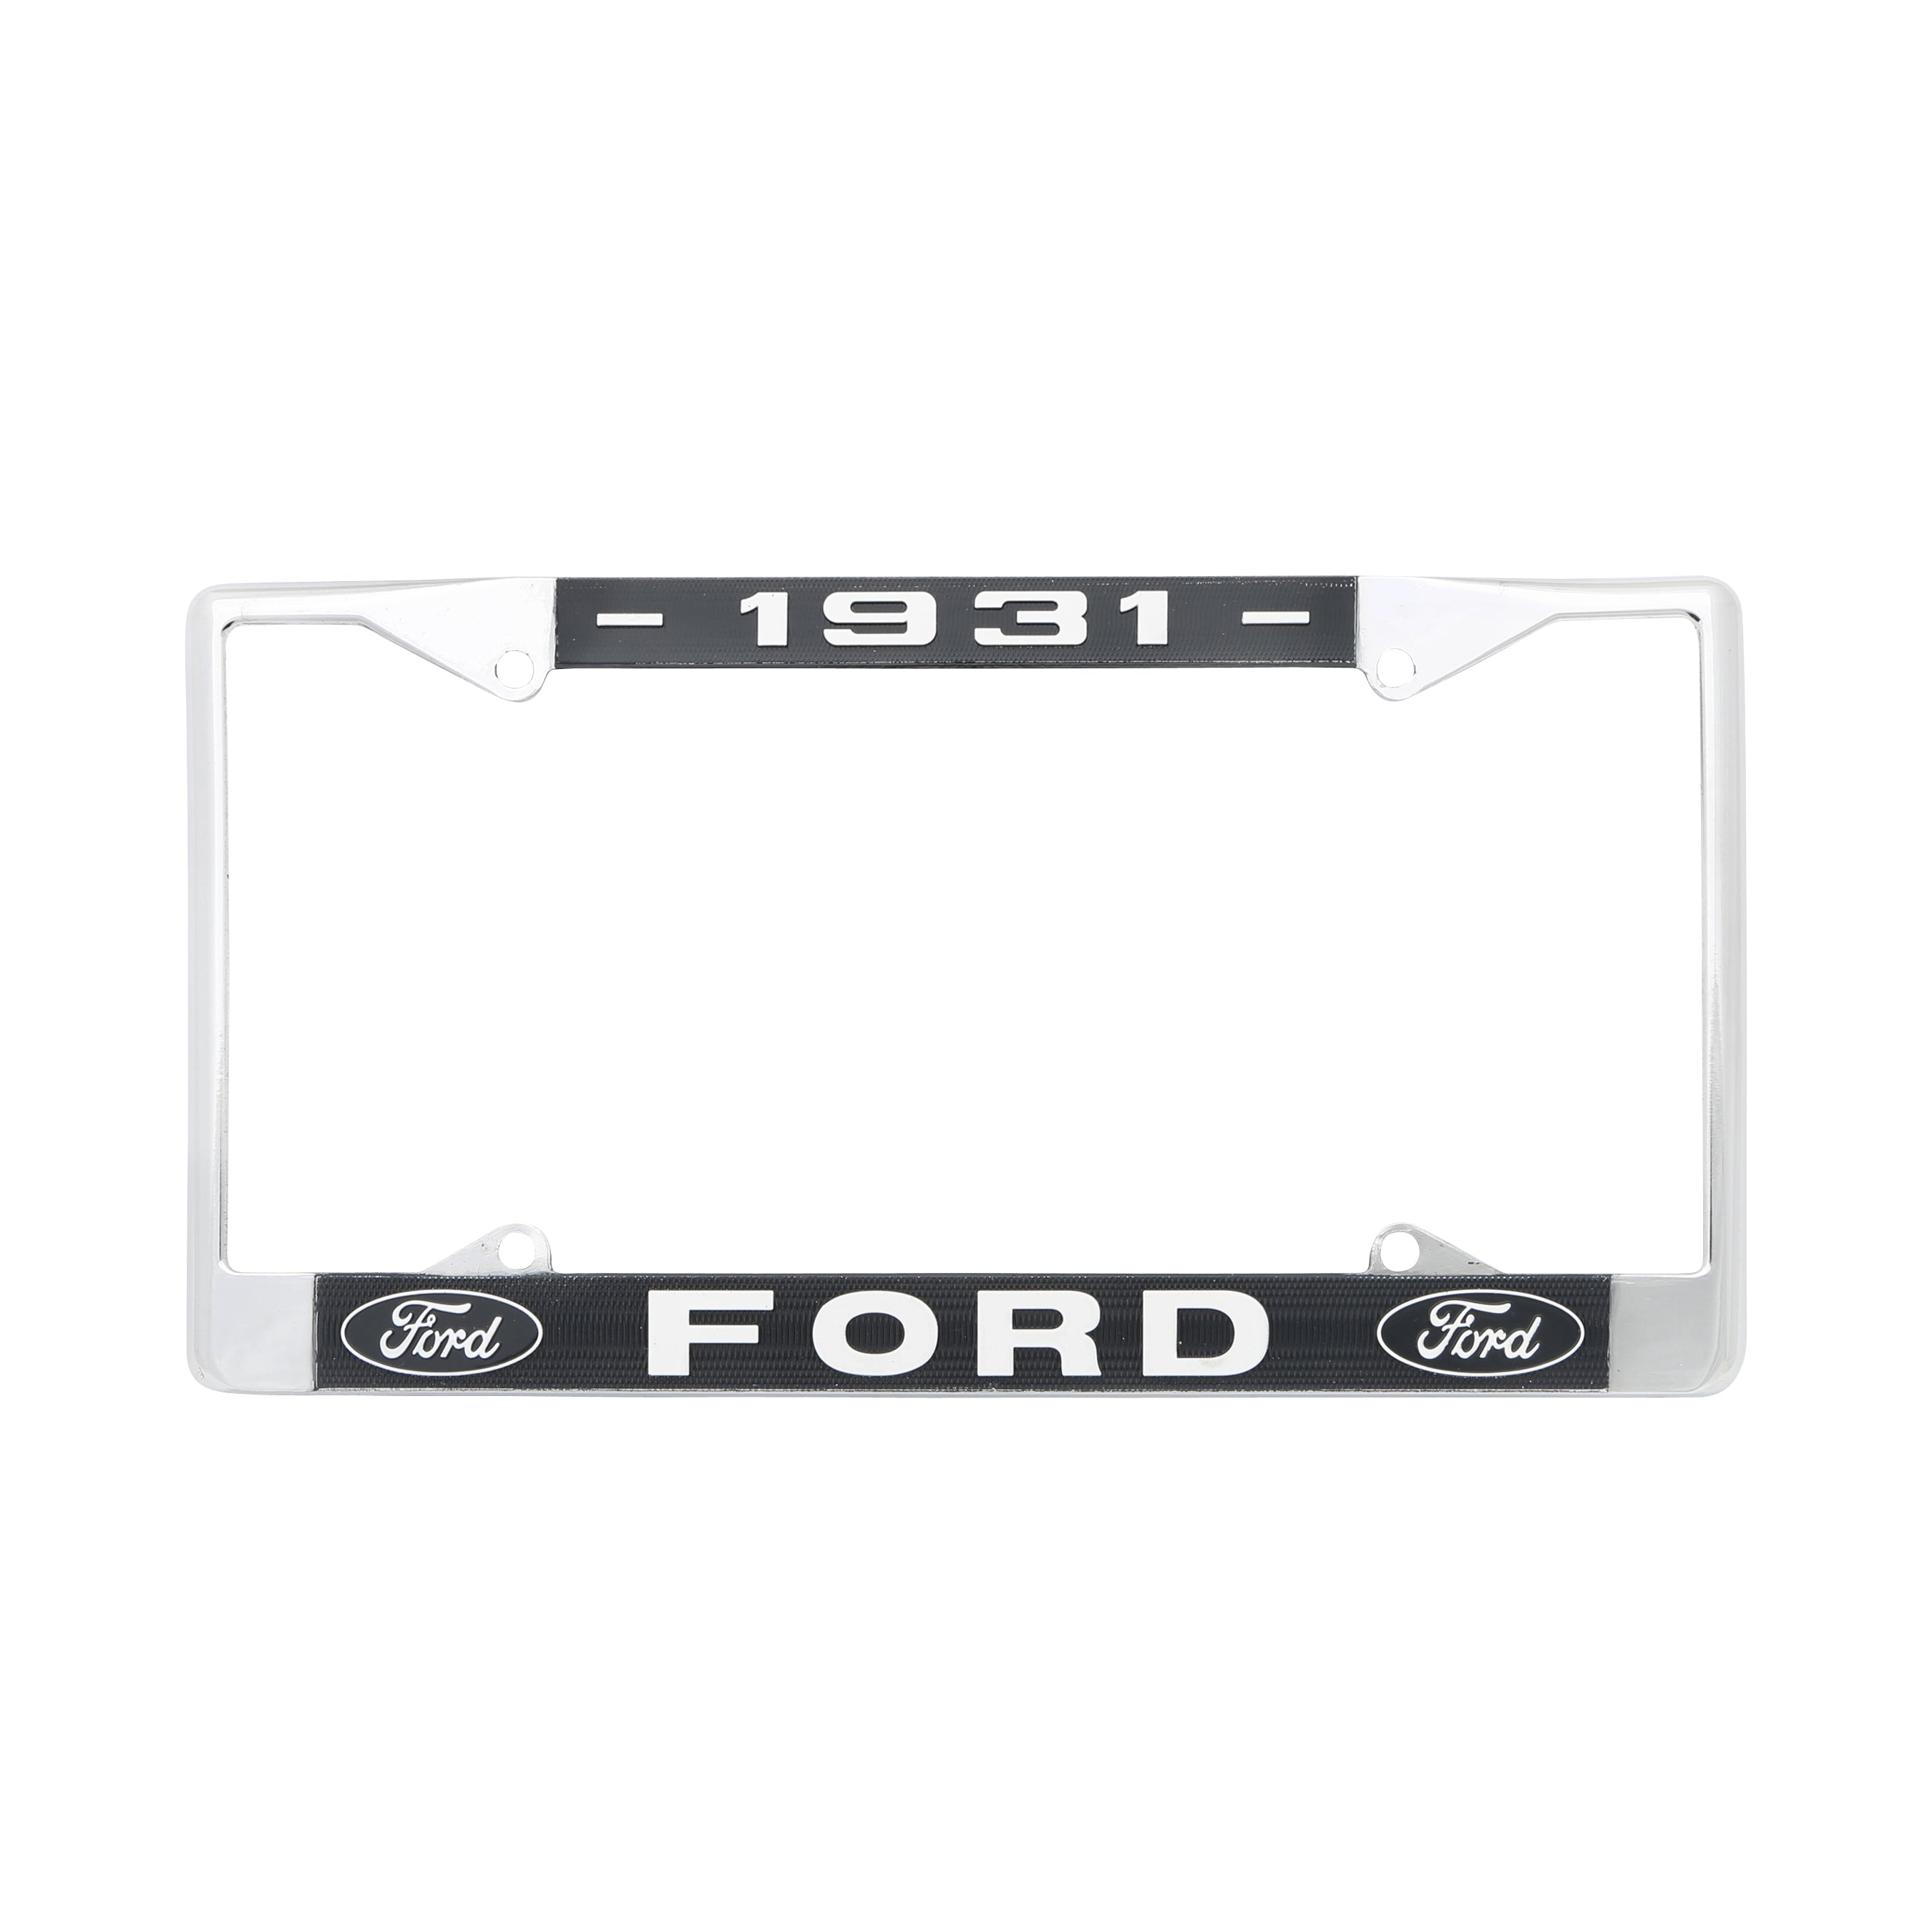 Rear License Plate Frame • 1931